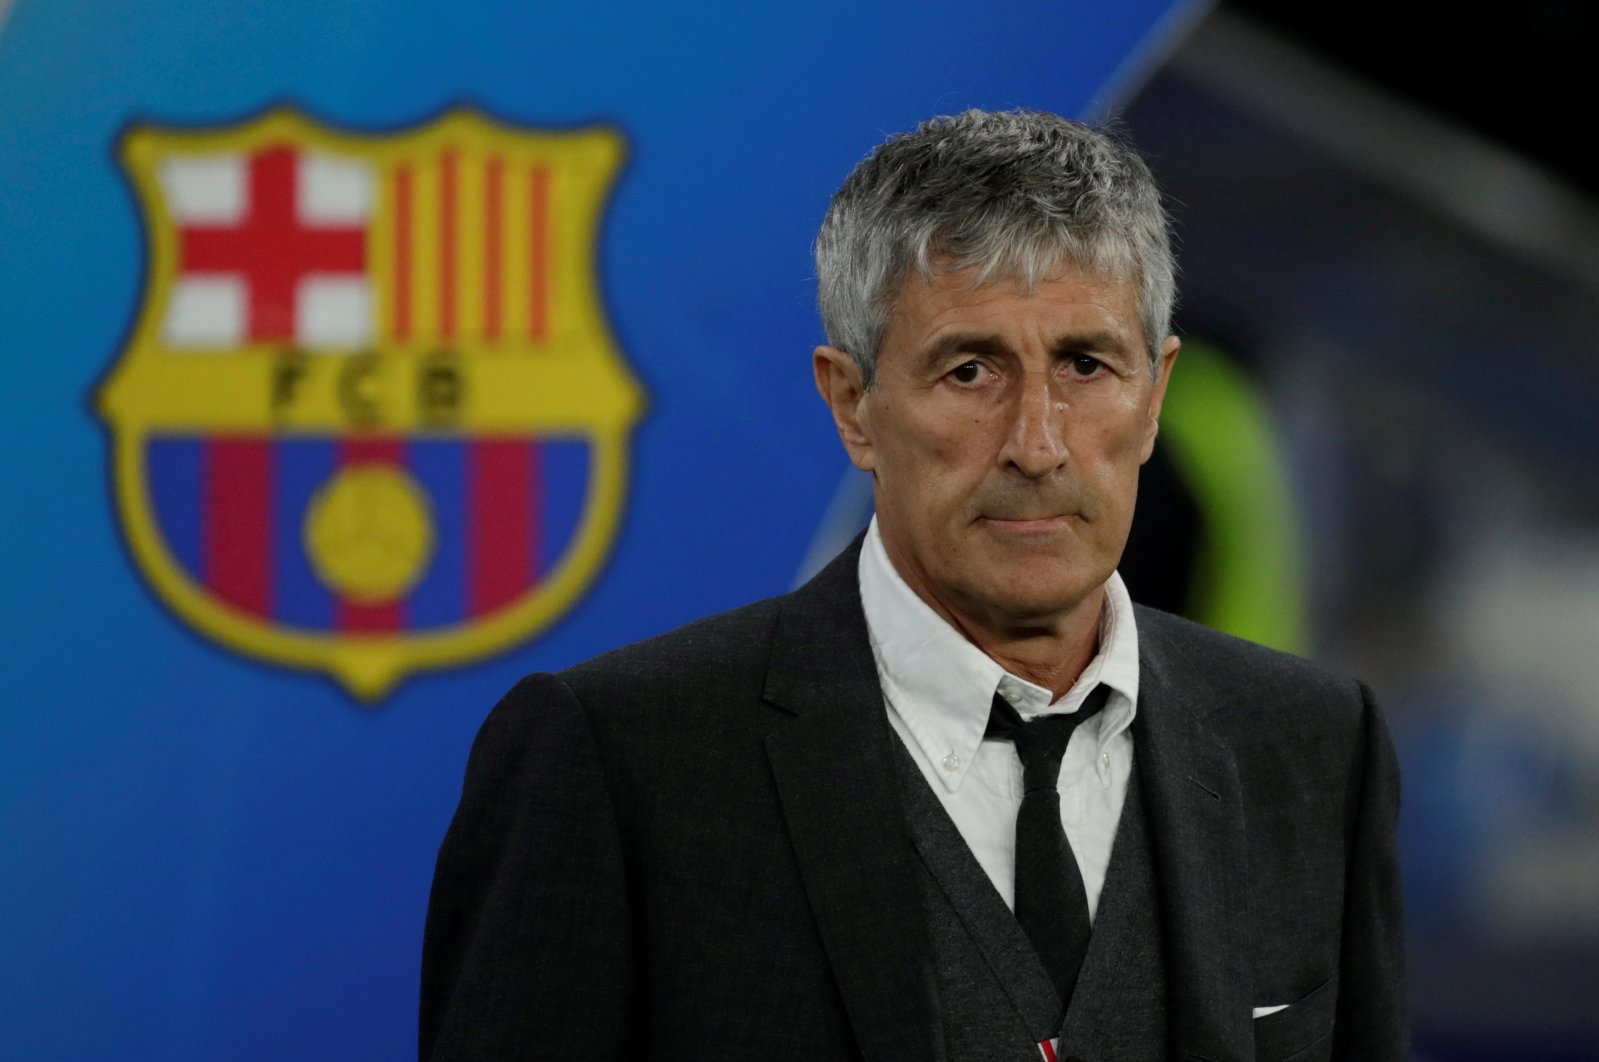 Barcelona coach Setien before a Champions League match in Naples, Italy, Feb. 25, 2020. (Reuters Photo)